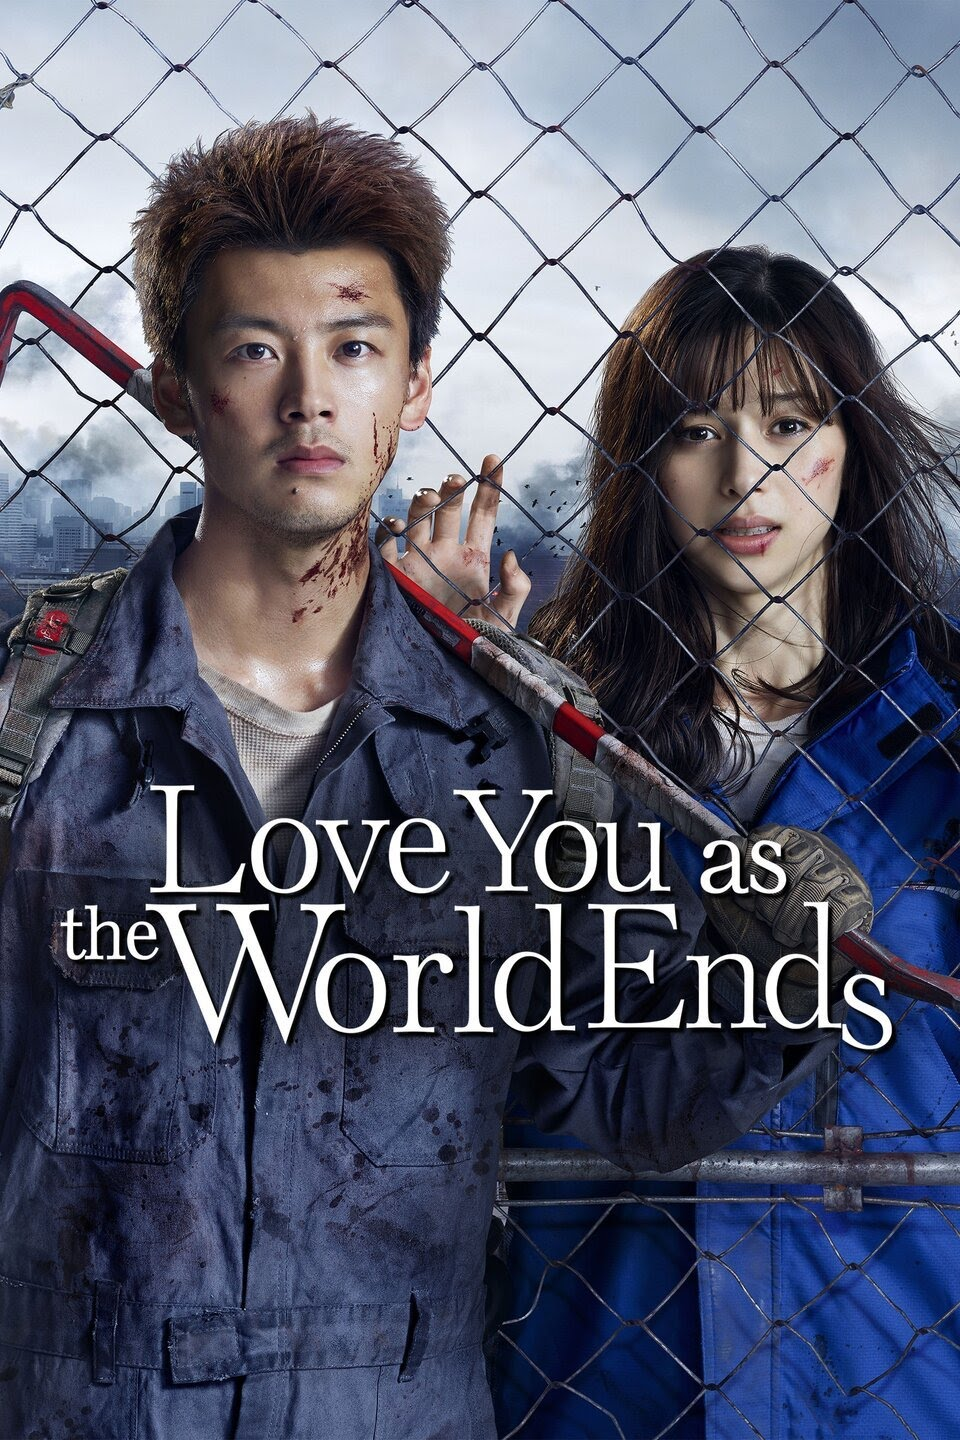 Kimi to Sekai ga Owaru Hi ni: Season 1 (2021) / Love You as the World Ends Season 1/ 君と世界が終わる日に1